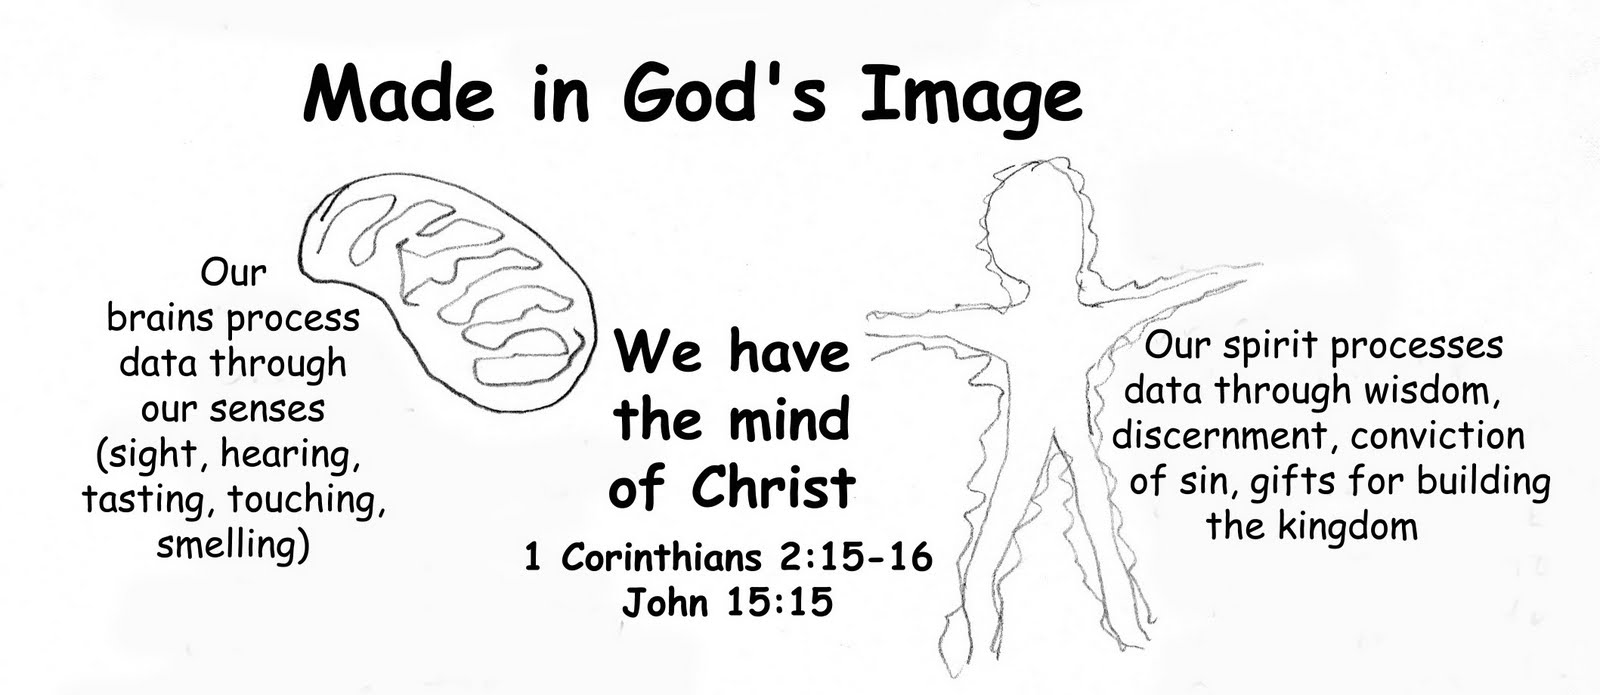 made in God s image